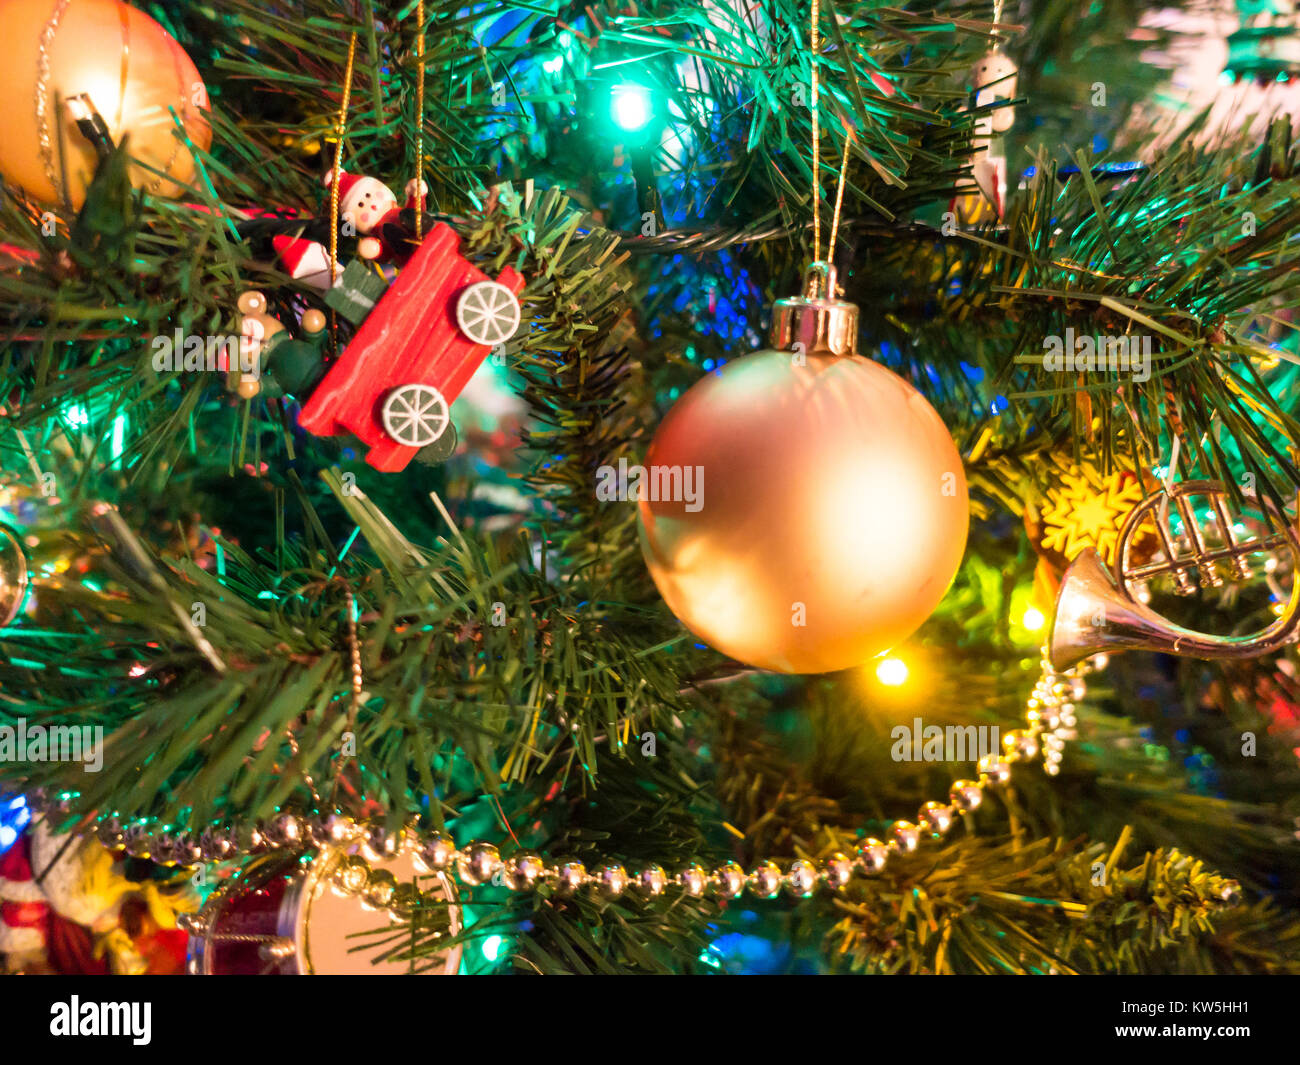 a-close-up-of-a-christmas-tree-decorated-with-baubles-and-colourful-KW5HH1.jpg